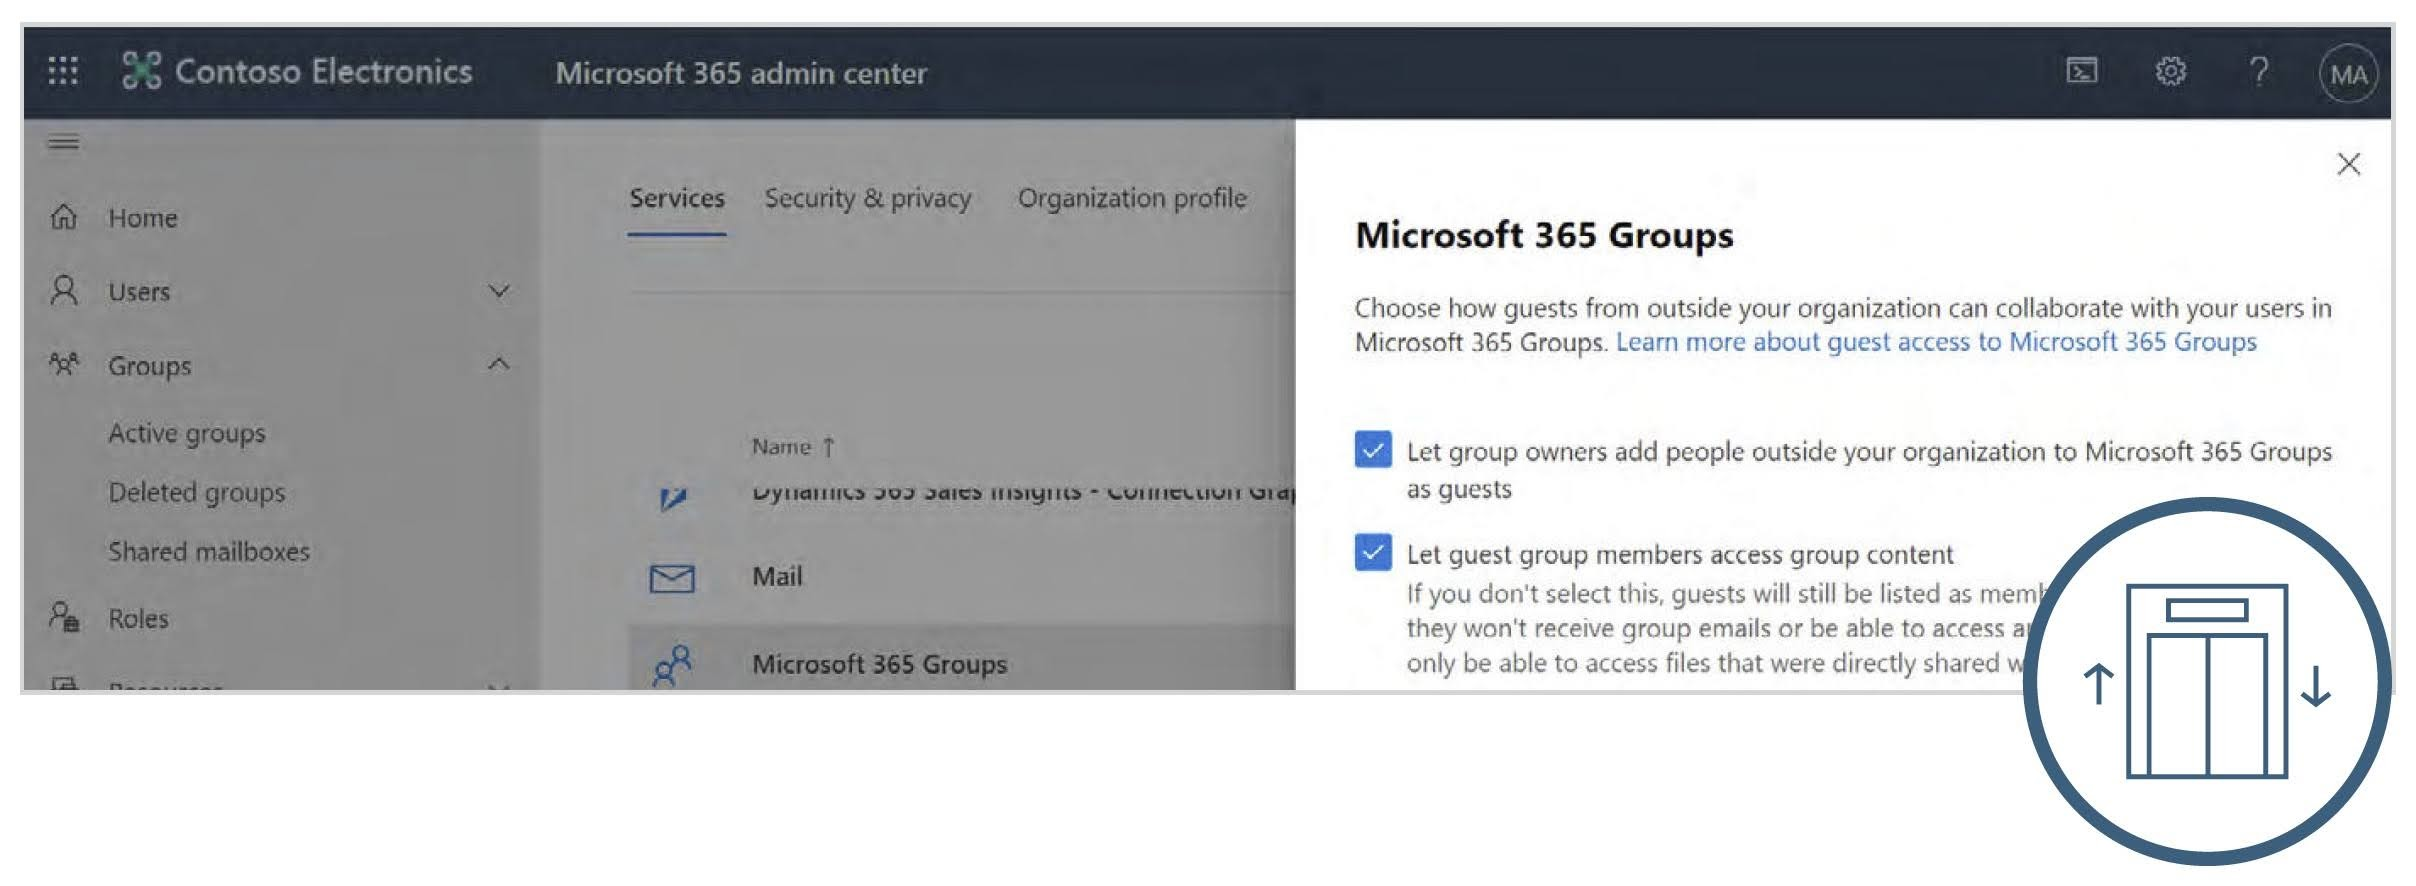 We can select once again if Owners can invite guests, this time specifically to Microsoft 365 Groups and if those guests can access Group content once they are a member.